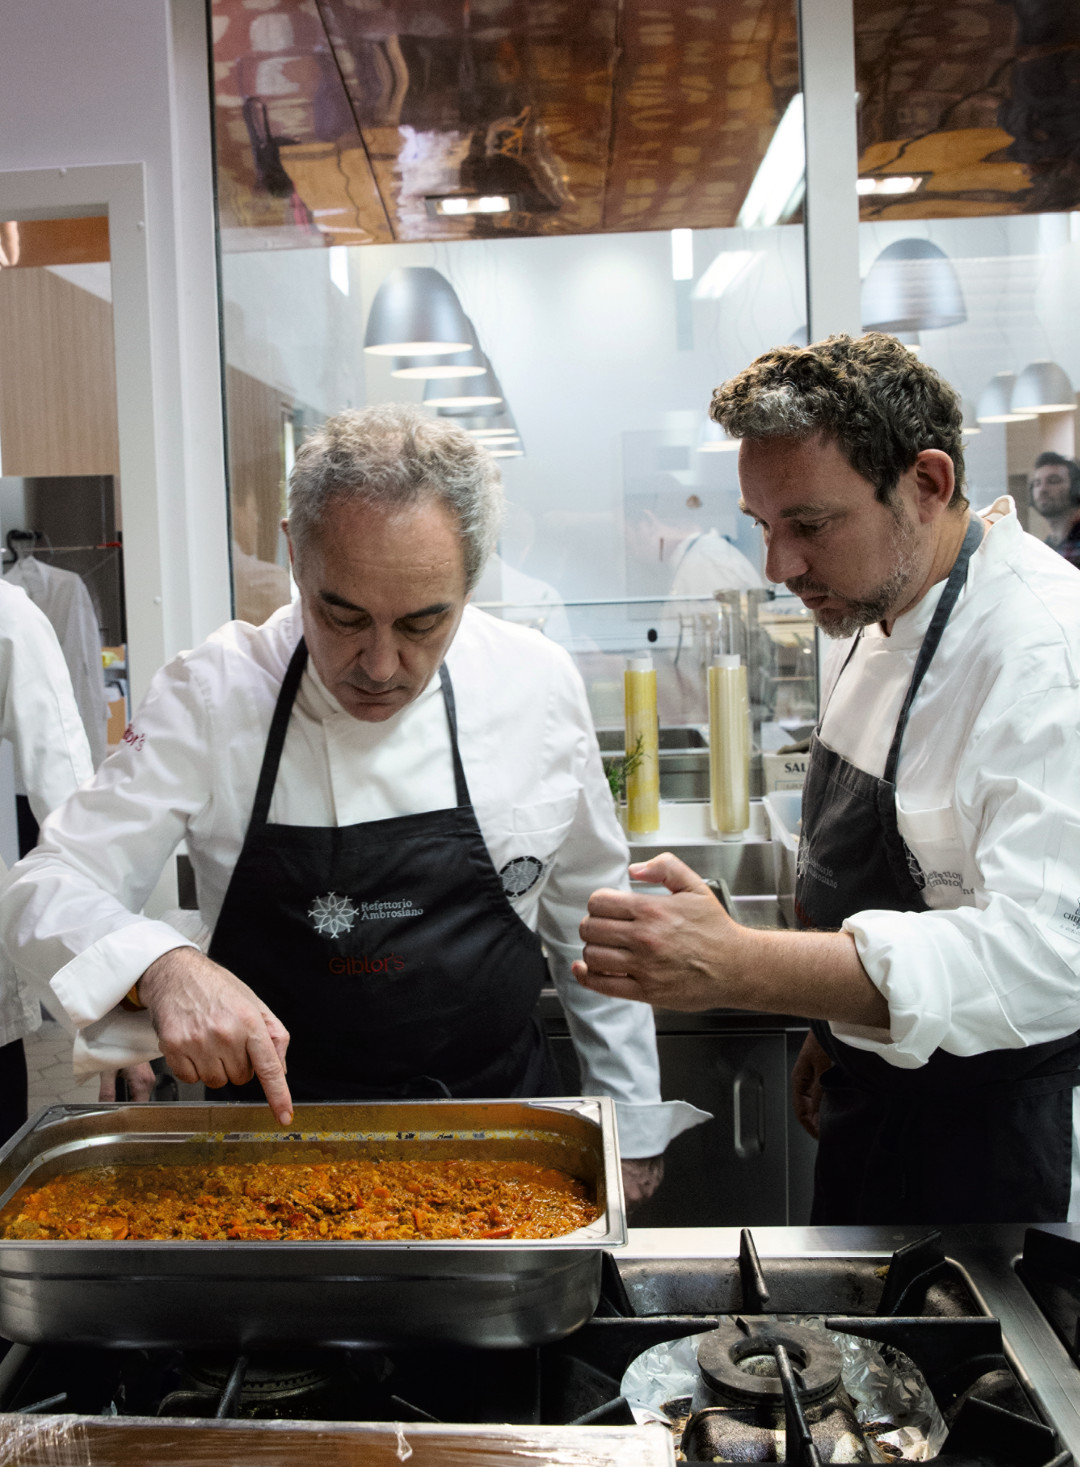 Ferran and Albert Adrià at Refettorio Ambrosiano, as reproduced in Bread is Gold